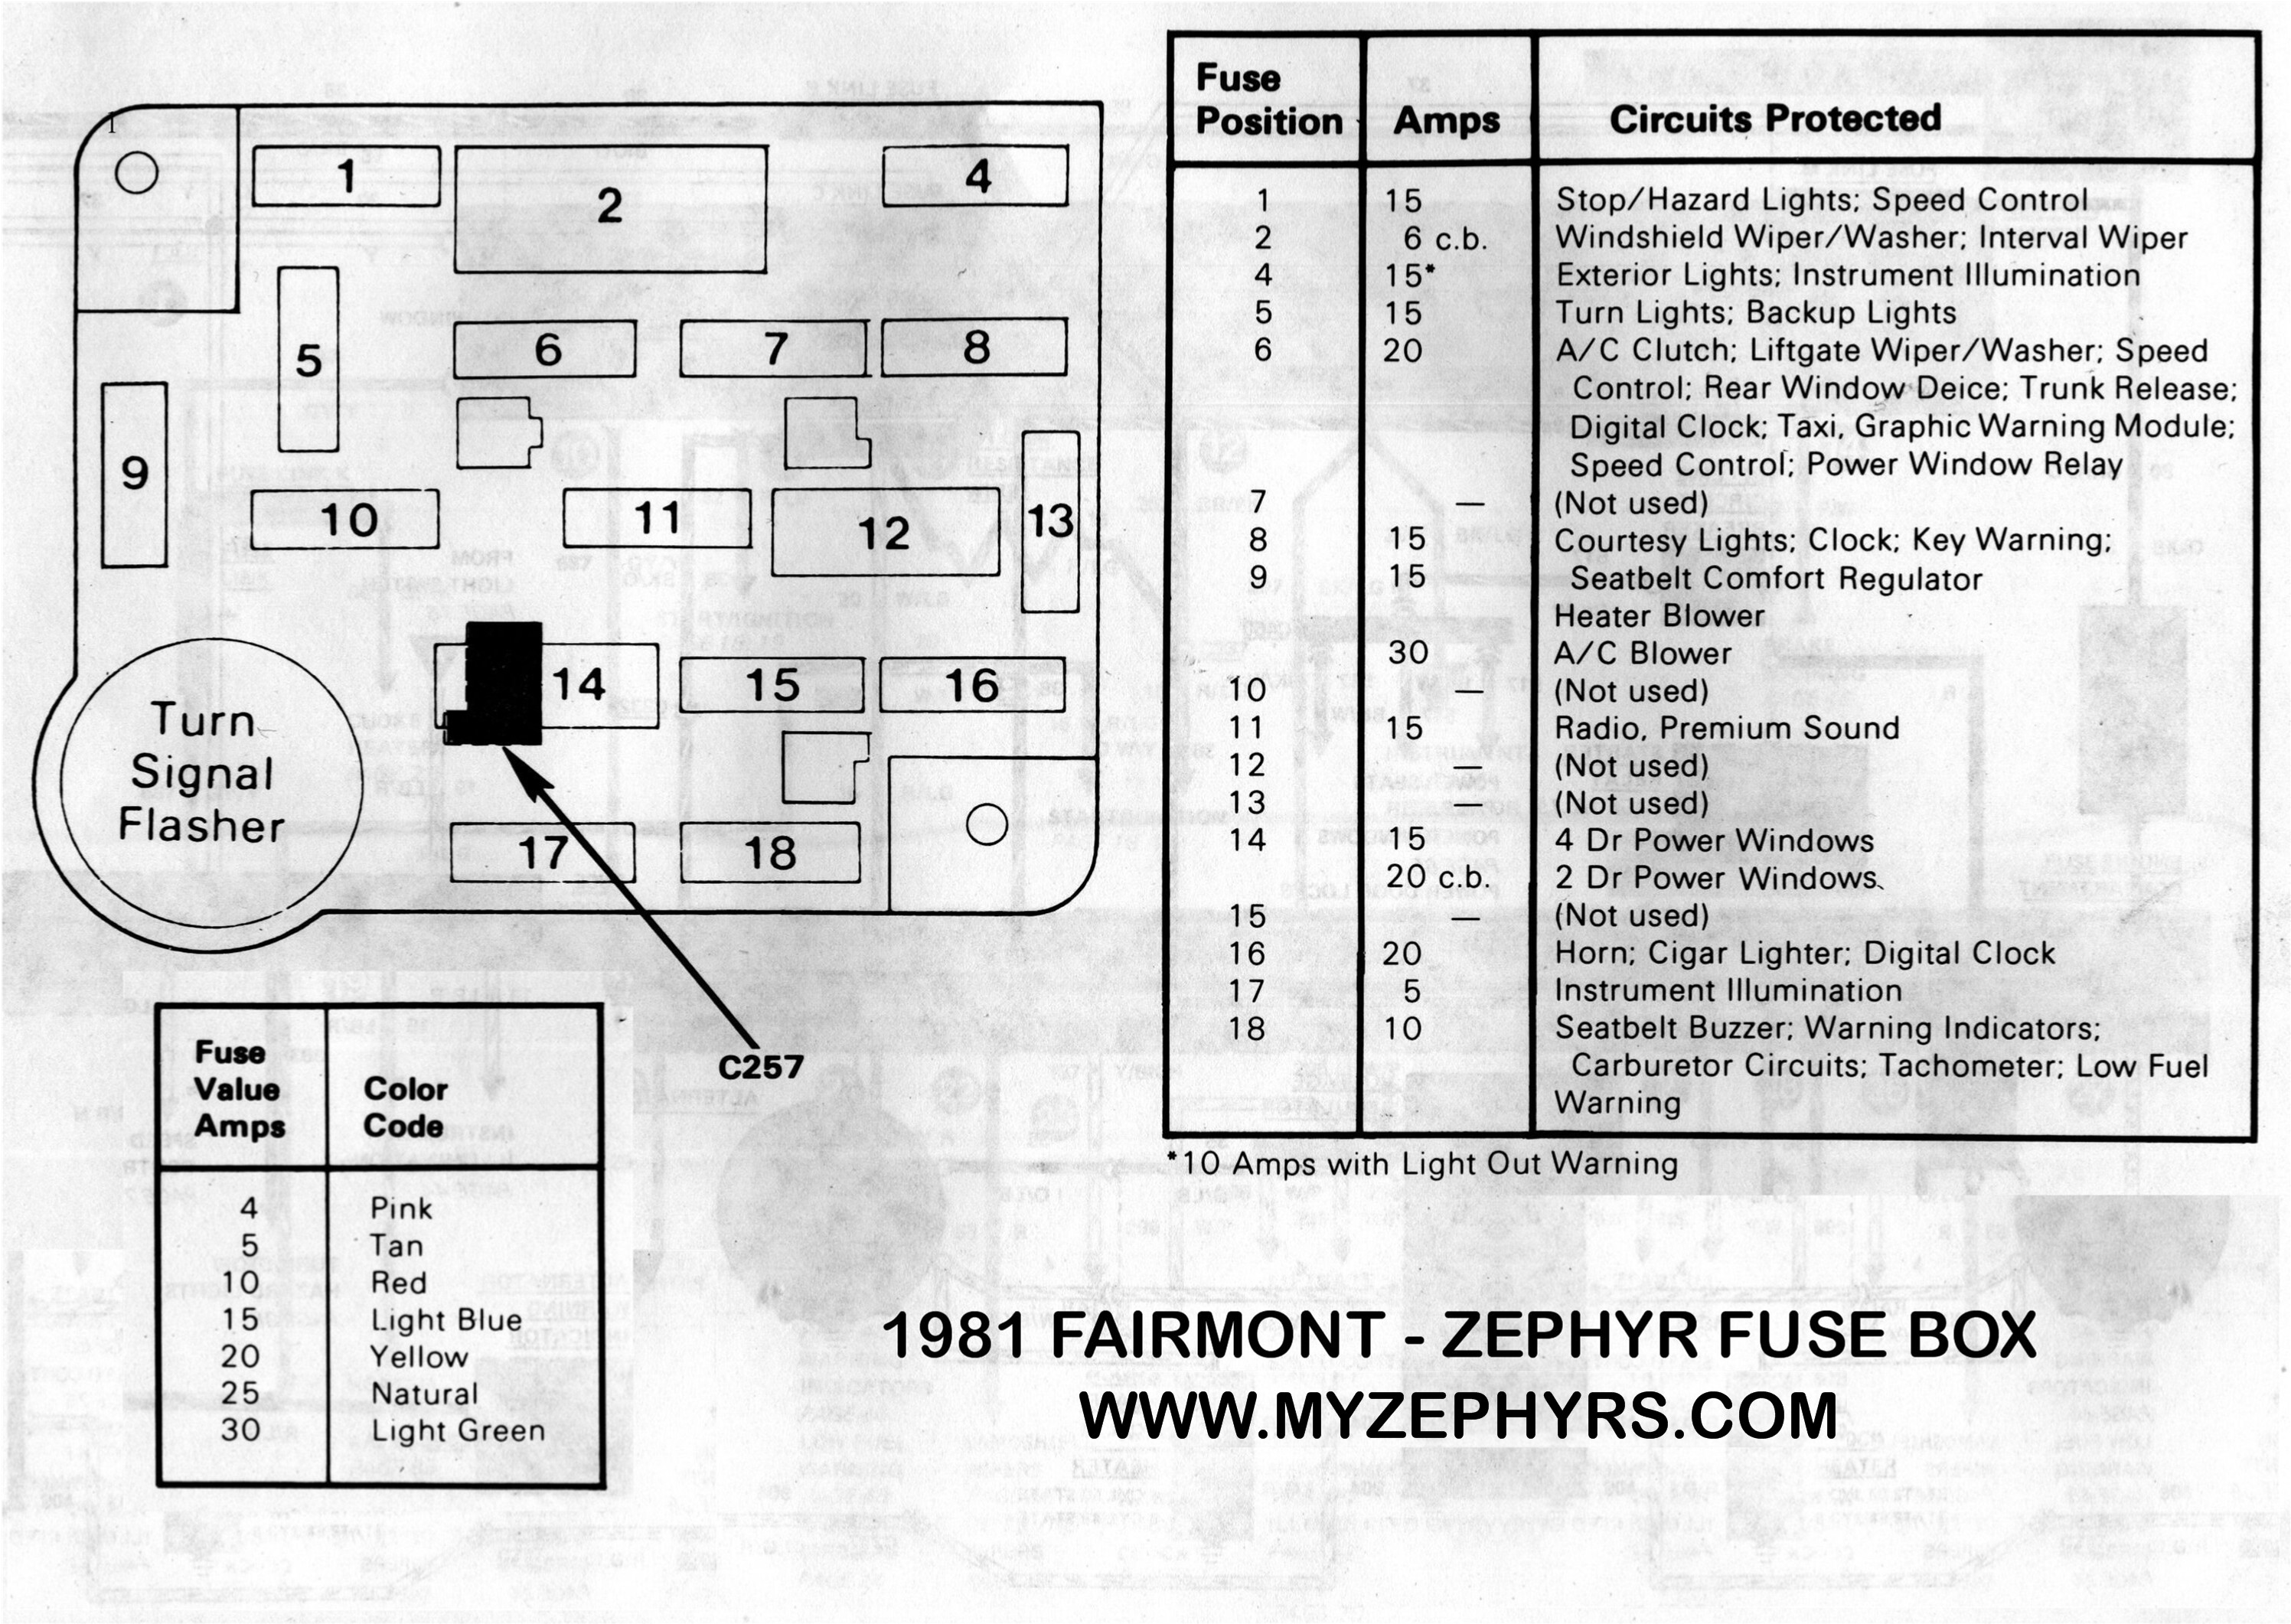 1978 Ford Fuse Box Archive Of Automotive Wiring Diagram F250 Images Gallery